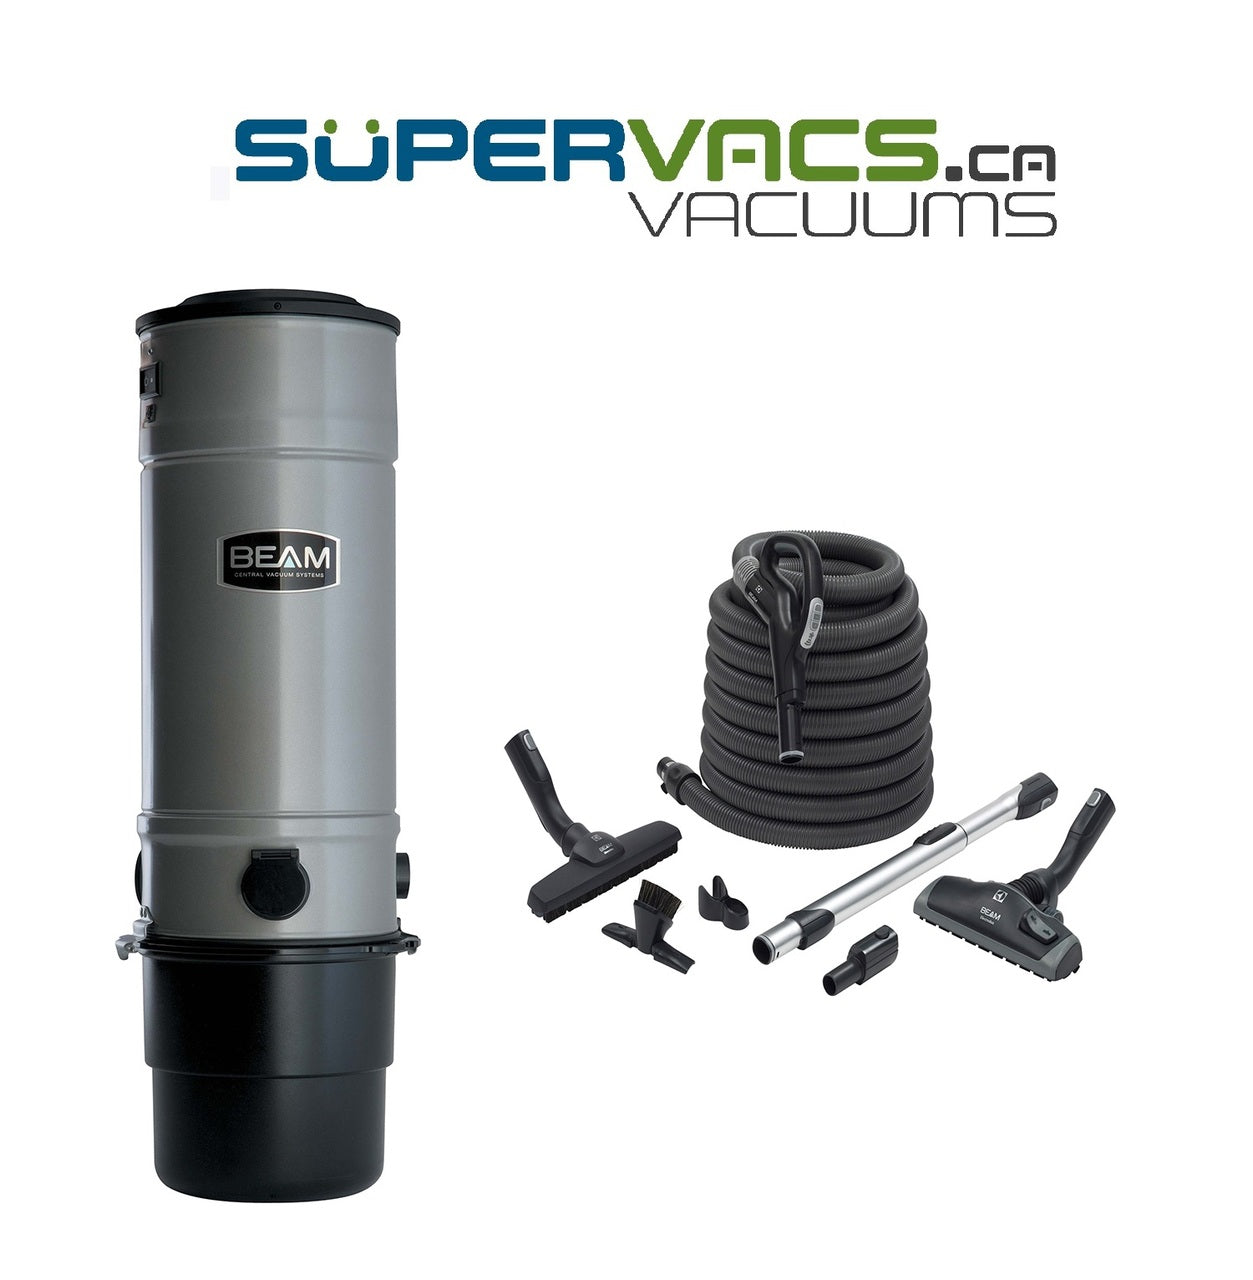 Beam Classic SC275 with premium bare floor attachment kit - Super Vacs